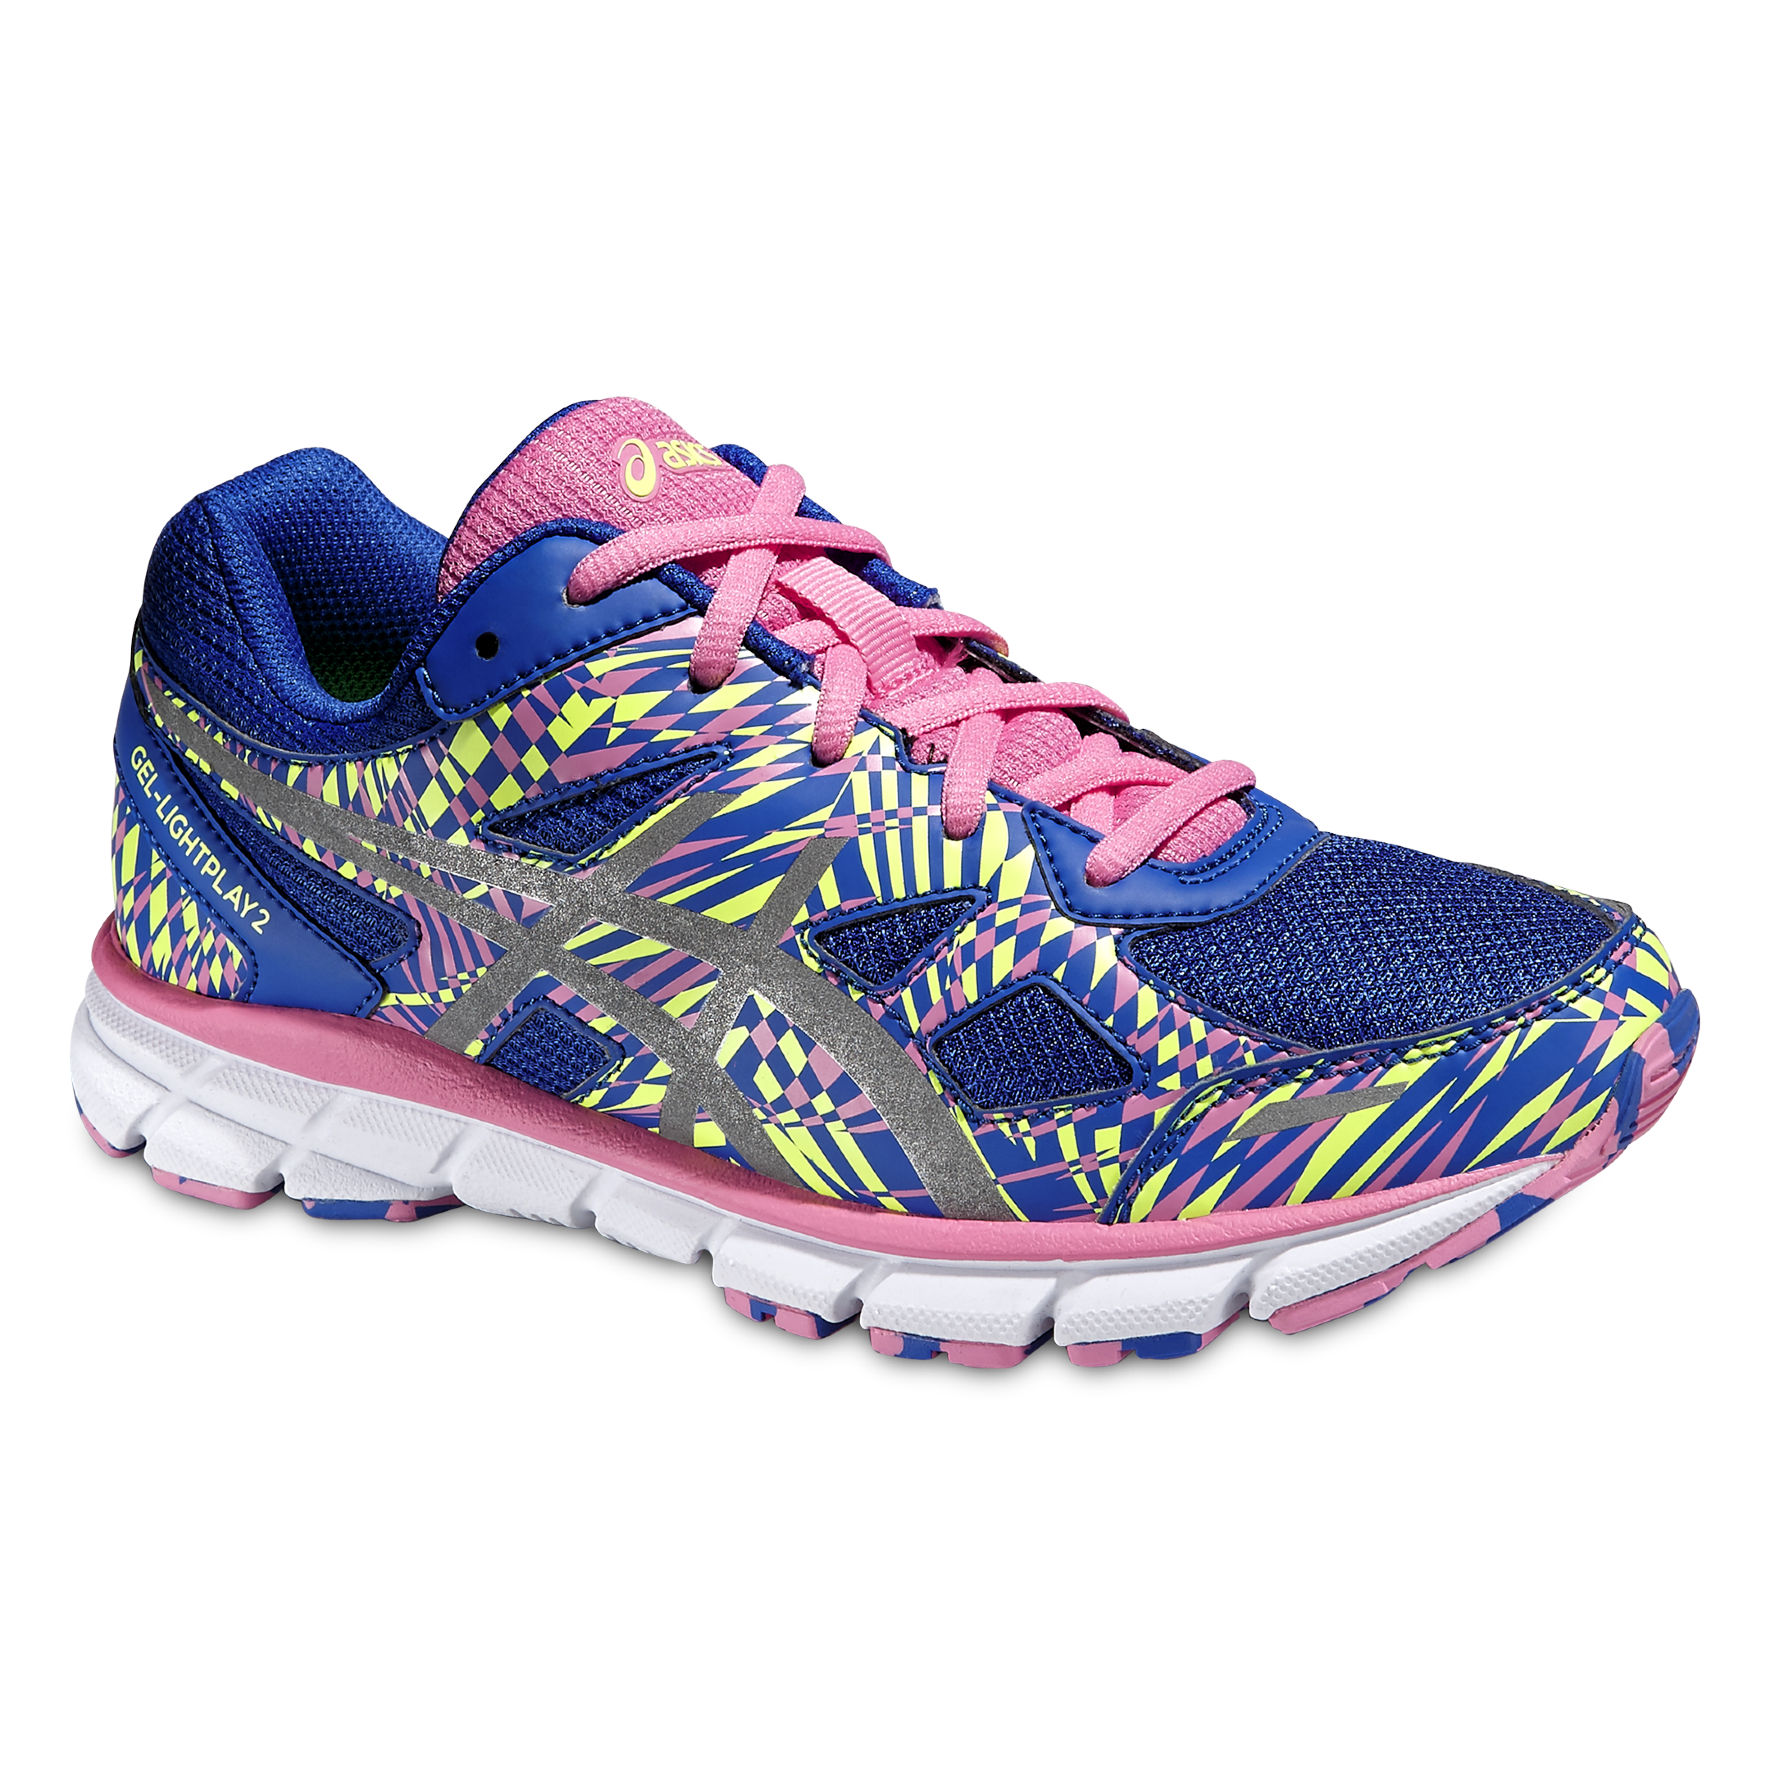 Asics Gel Lightplay 2 GS Girls in Blau Pink